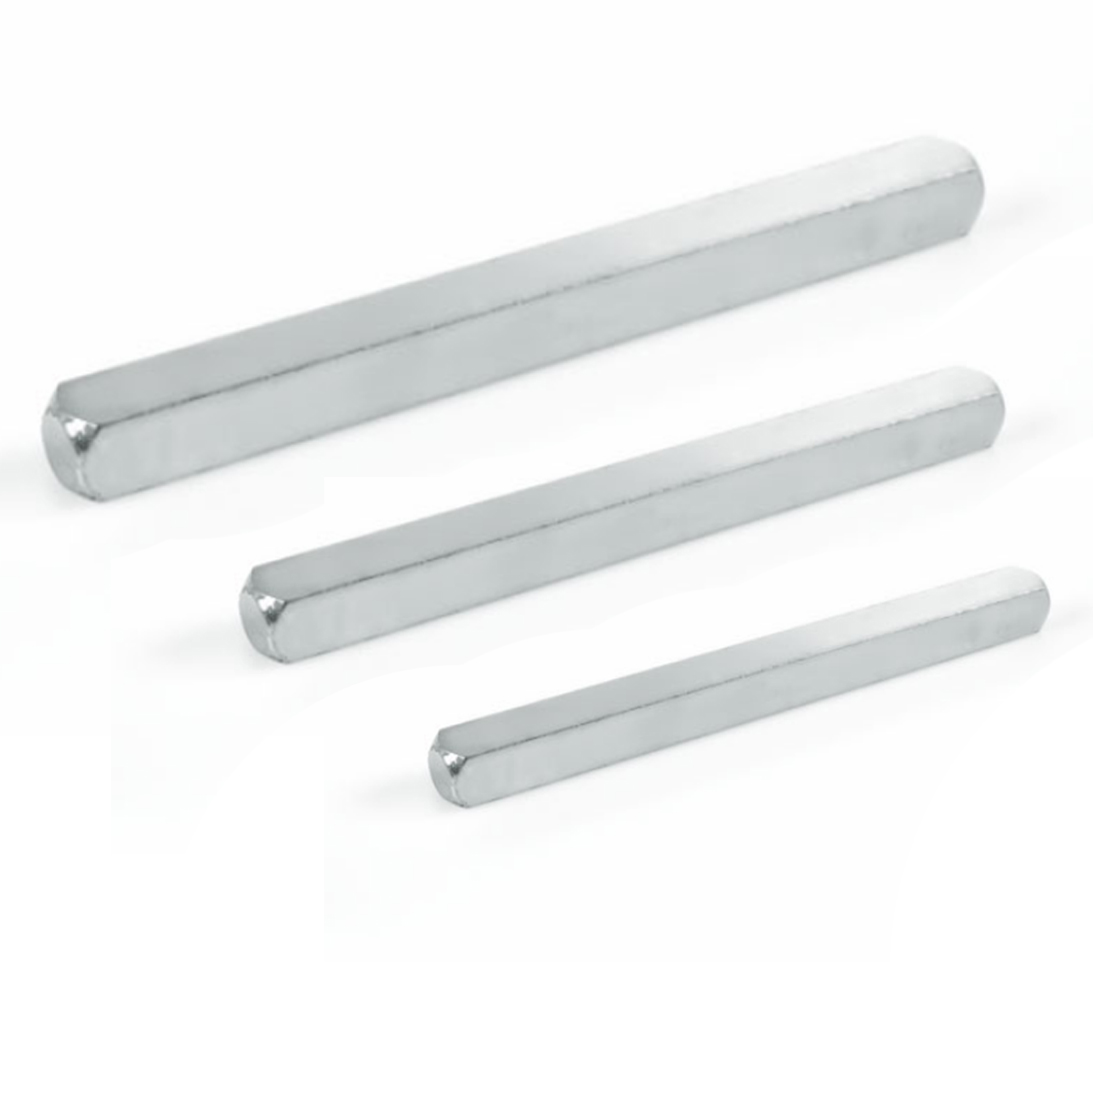 8mm plain bar spindles